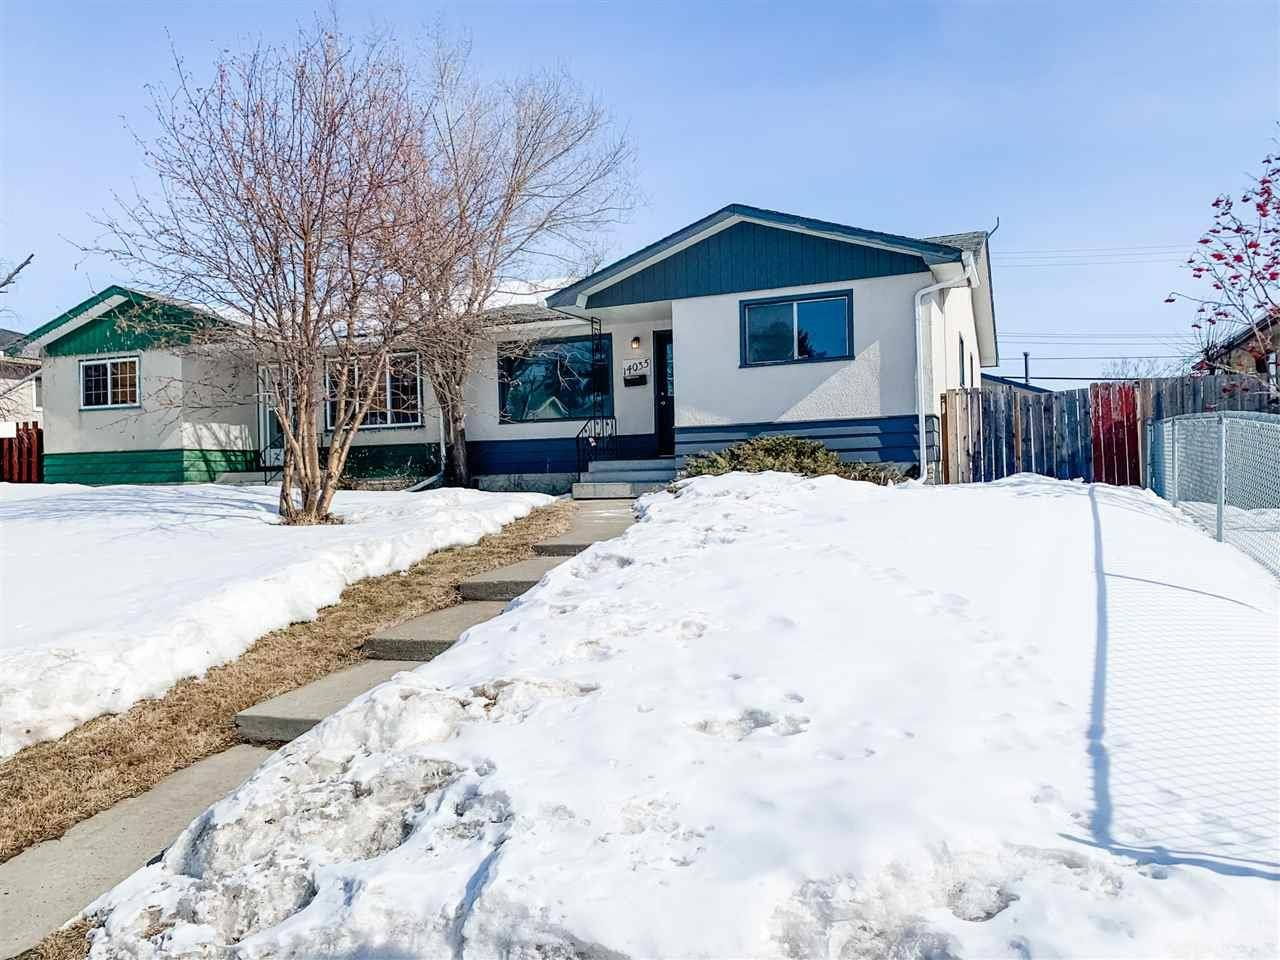 Townhouse for sale at 14035 63 St Nw Edmonton Alberta - MLS: E4186843